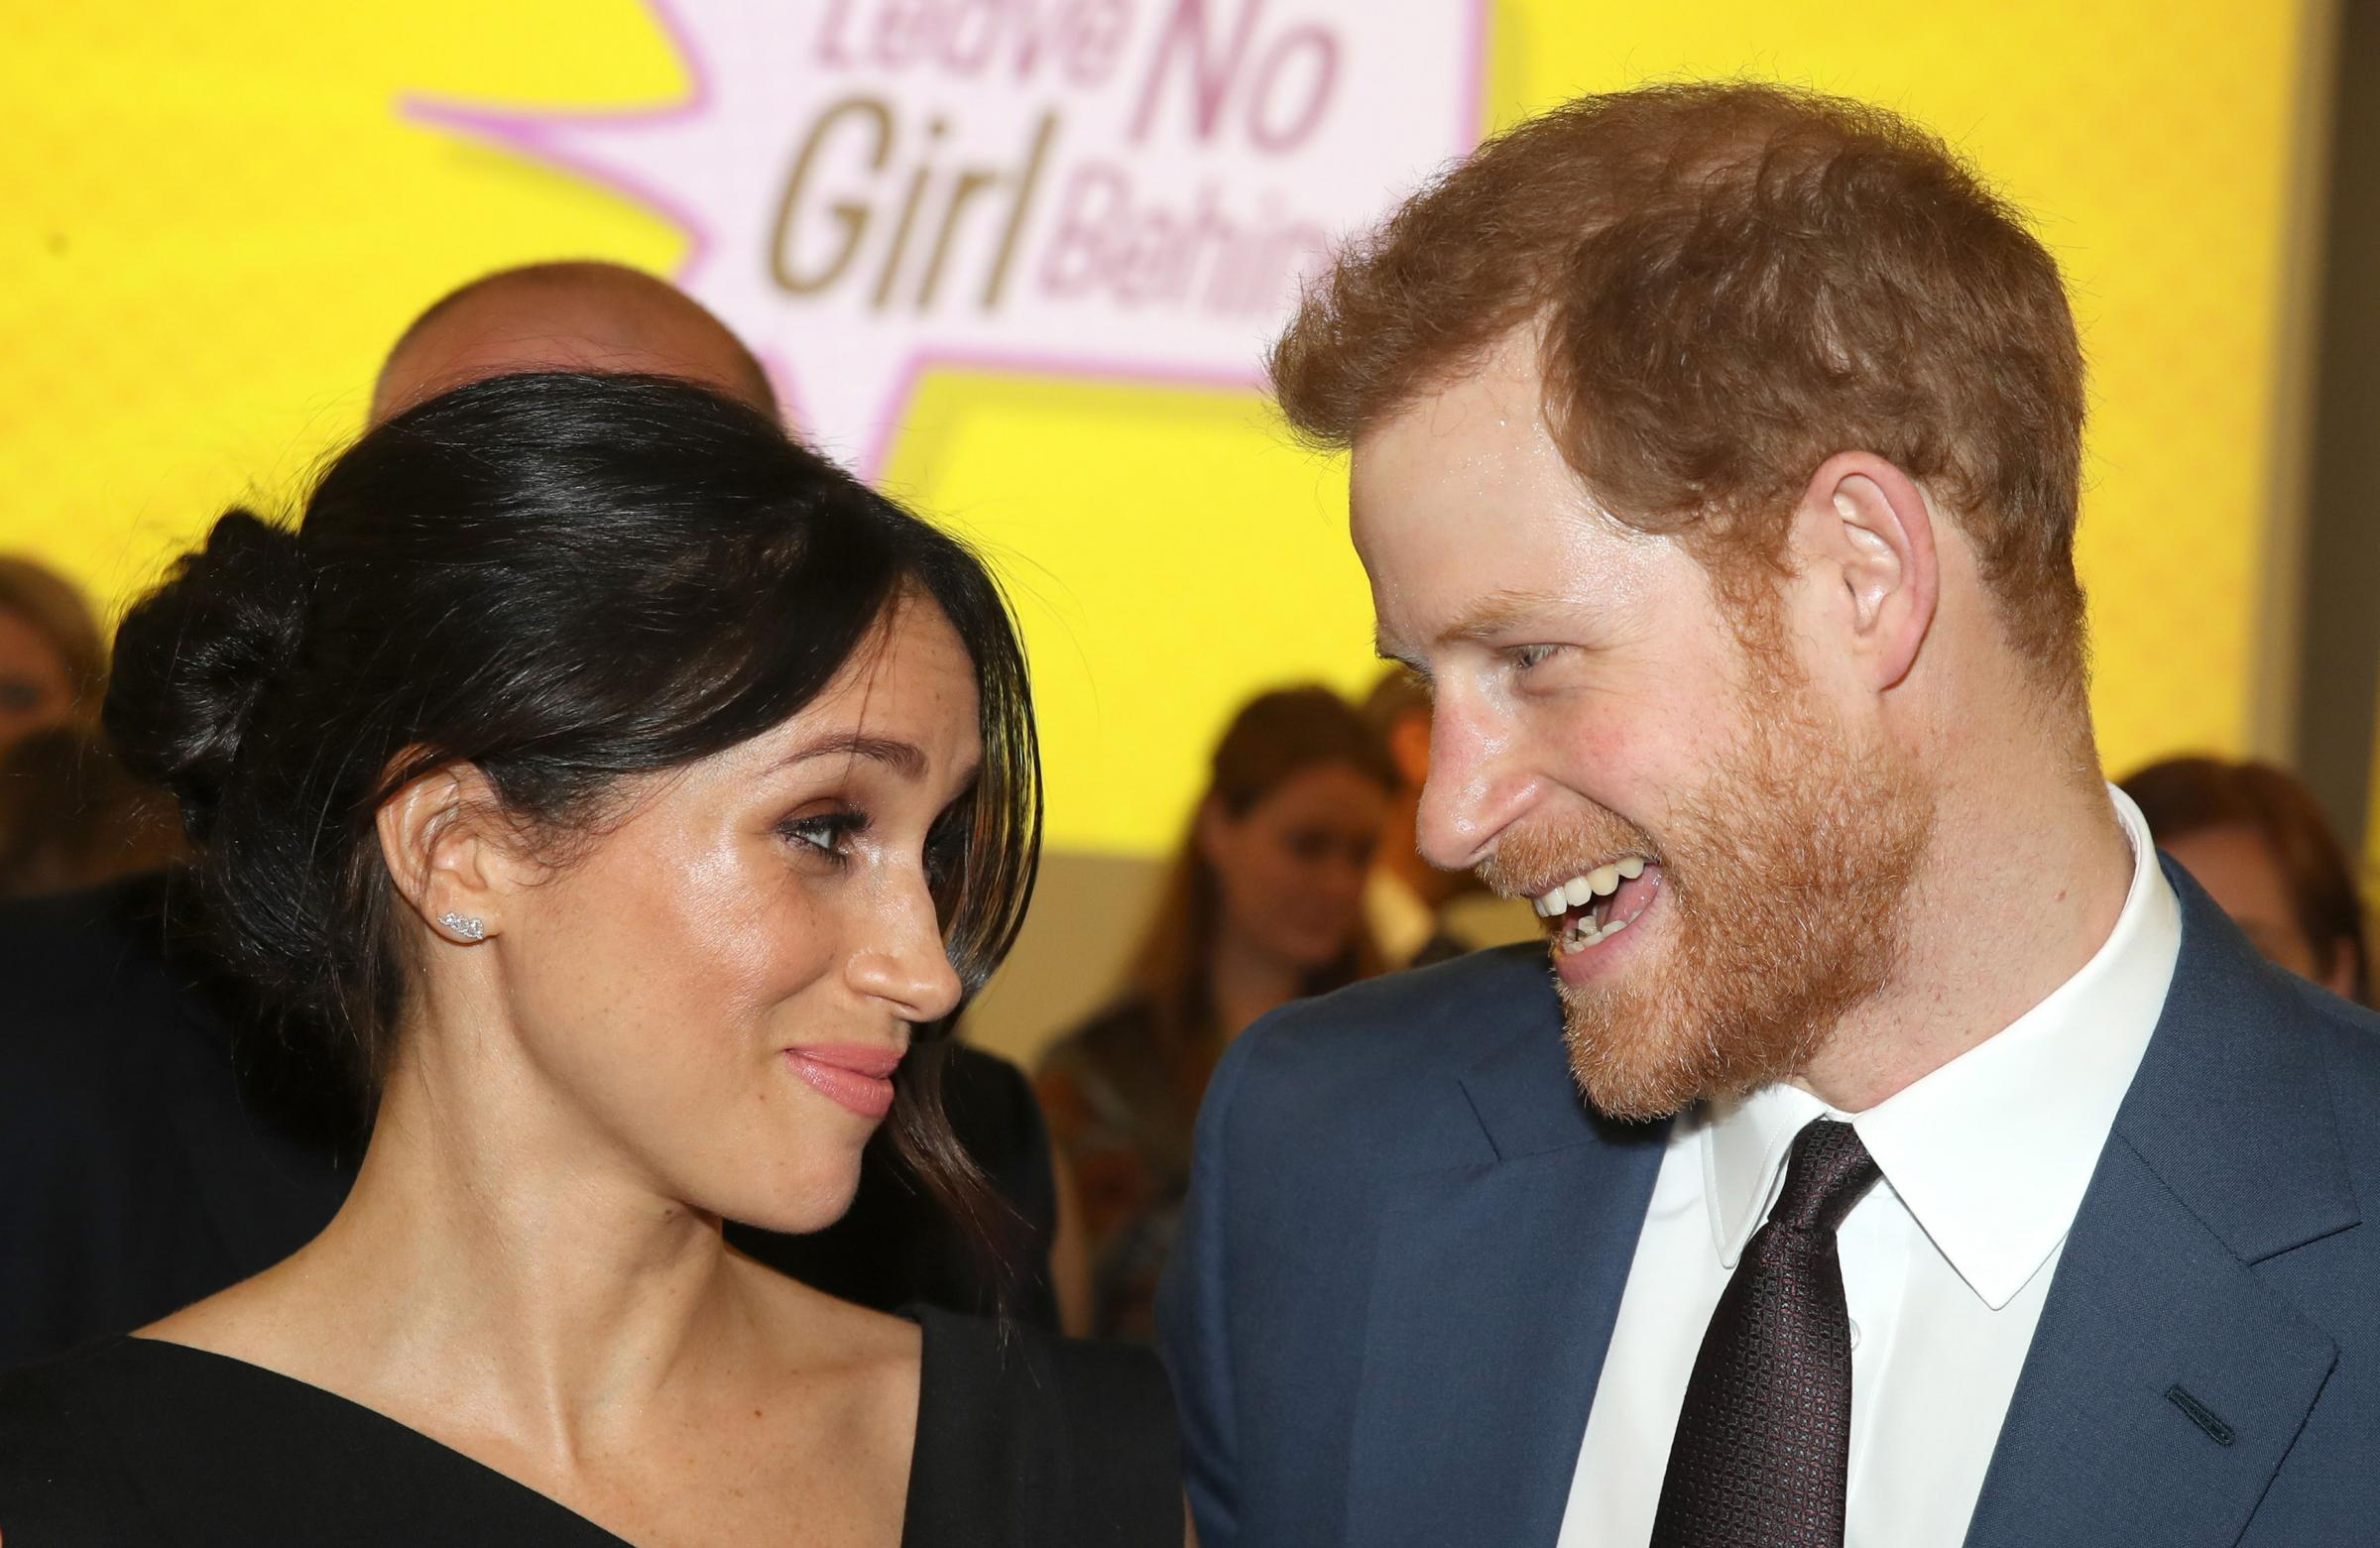 Prince Harry and Meghan Markle attend a women's empowerment reception at the Royal Aeronautical Society in London during the Commonwealth Heads of Government Meeting. Picture: Chris Jackson/PA Wire